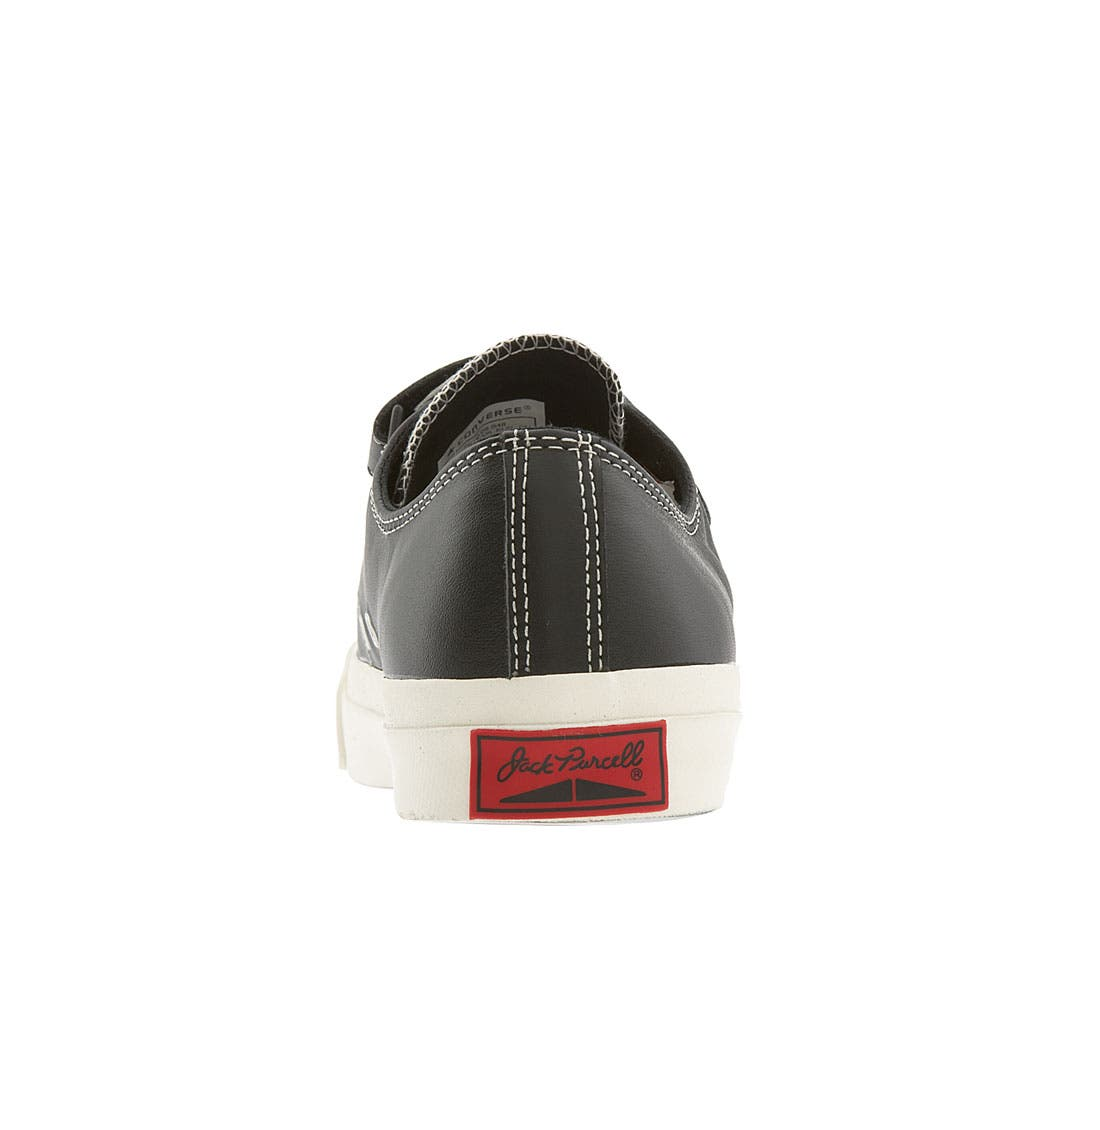 CONVERSE,                             'Jack Purcell' Velcro<sup>®</sup> Sneaker,                             Alternate thumbnail 4, color,                             001